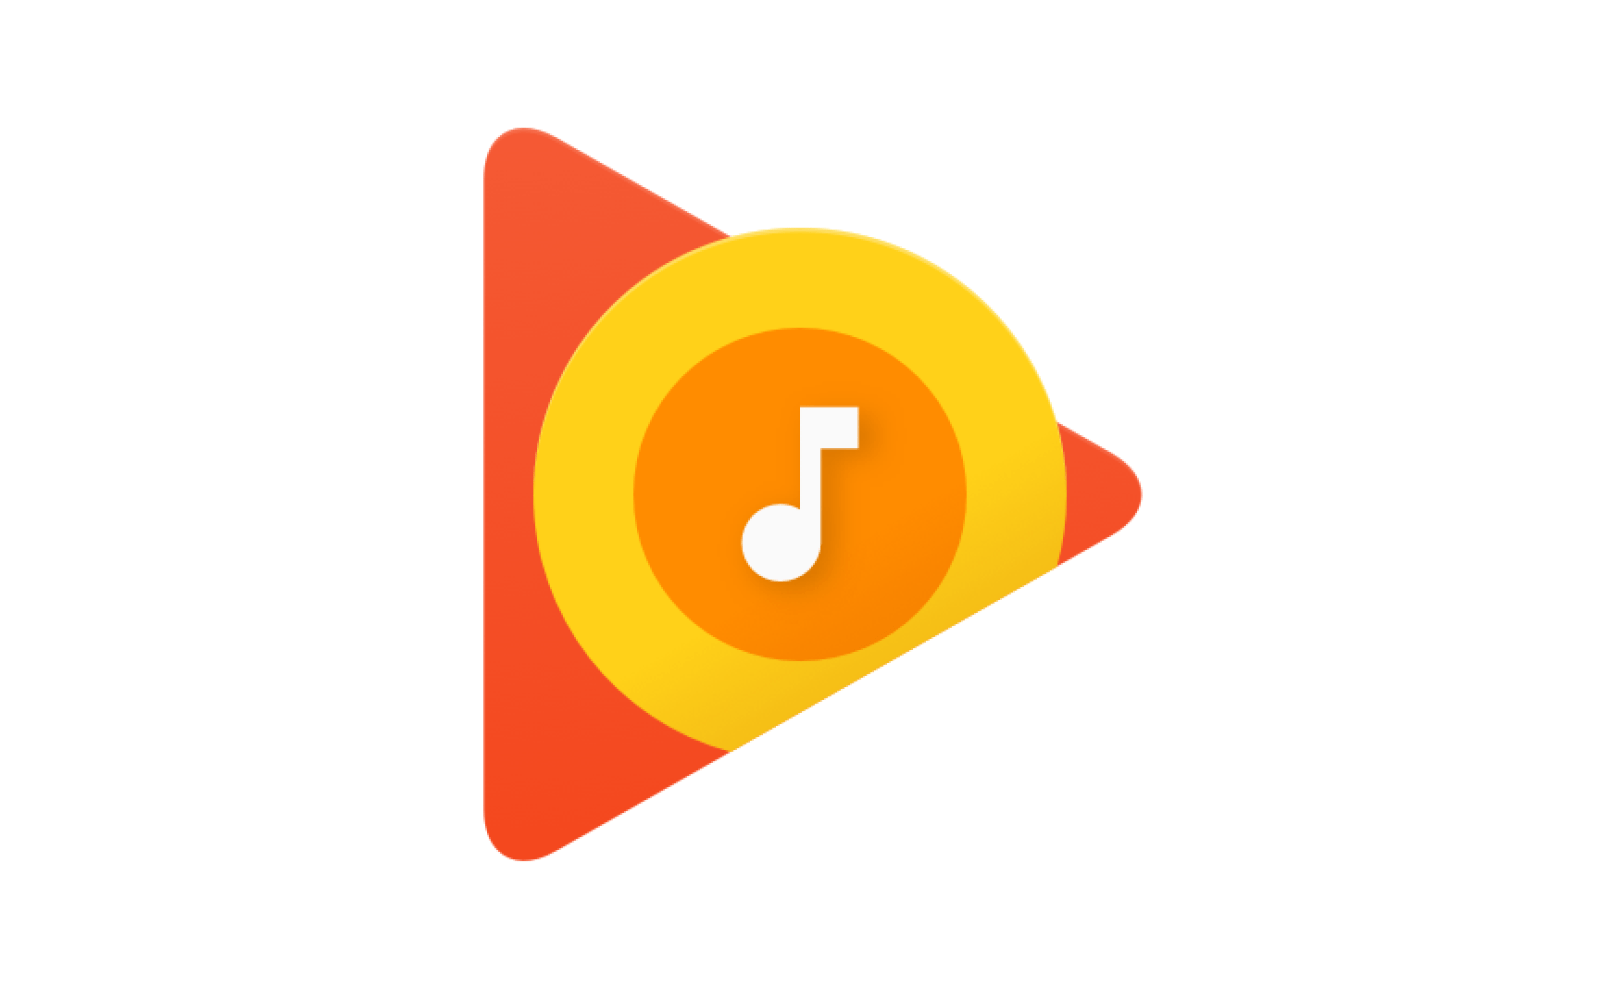 Play Music 7.4 adds 'Recents' to navigation drawer, now has 40.